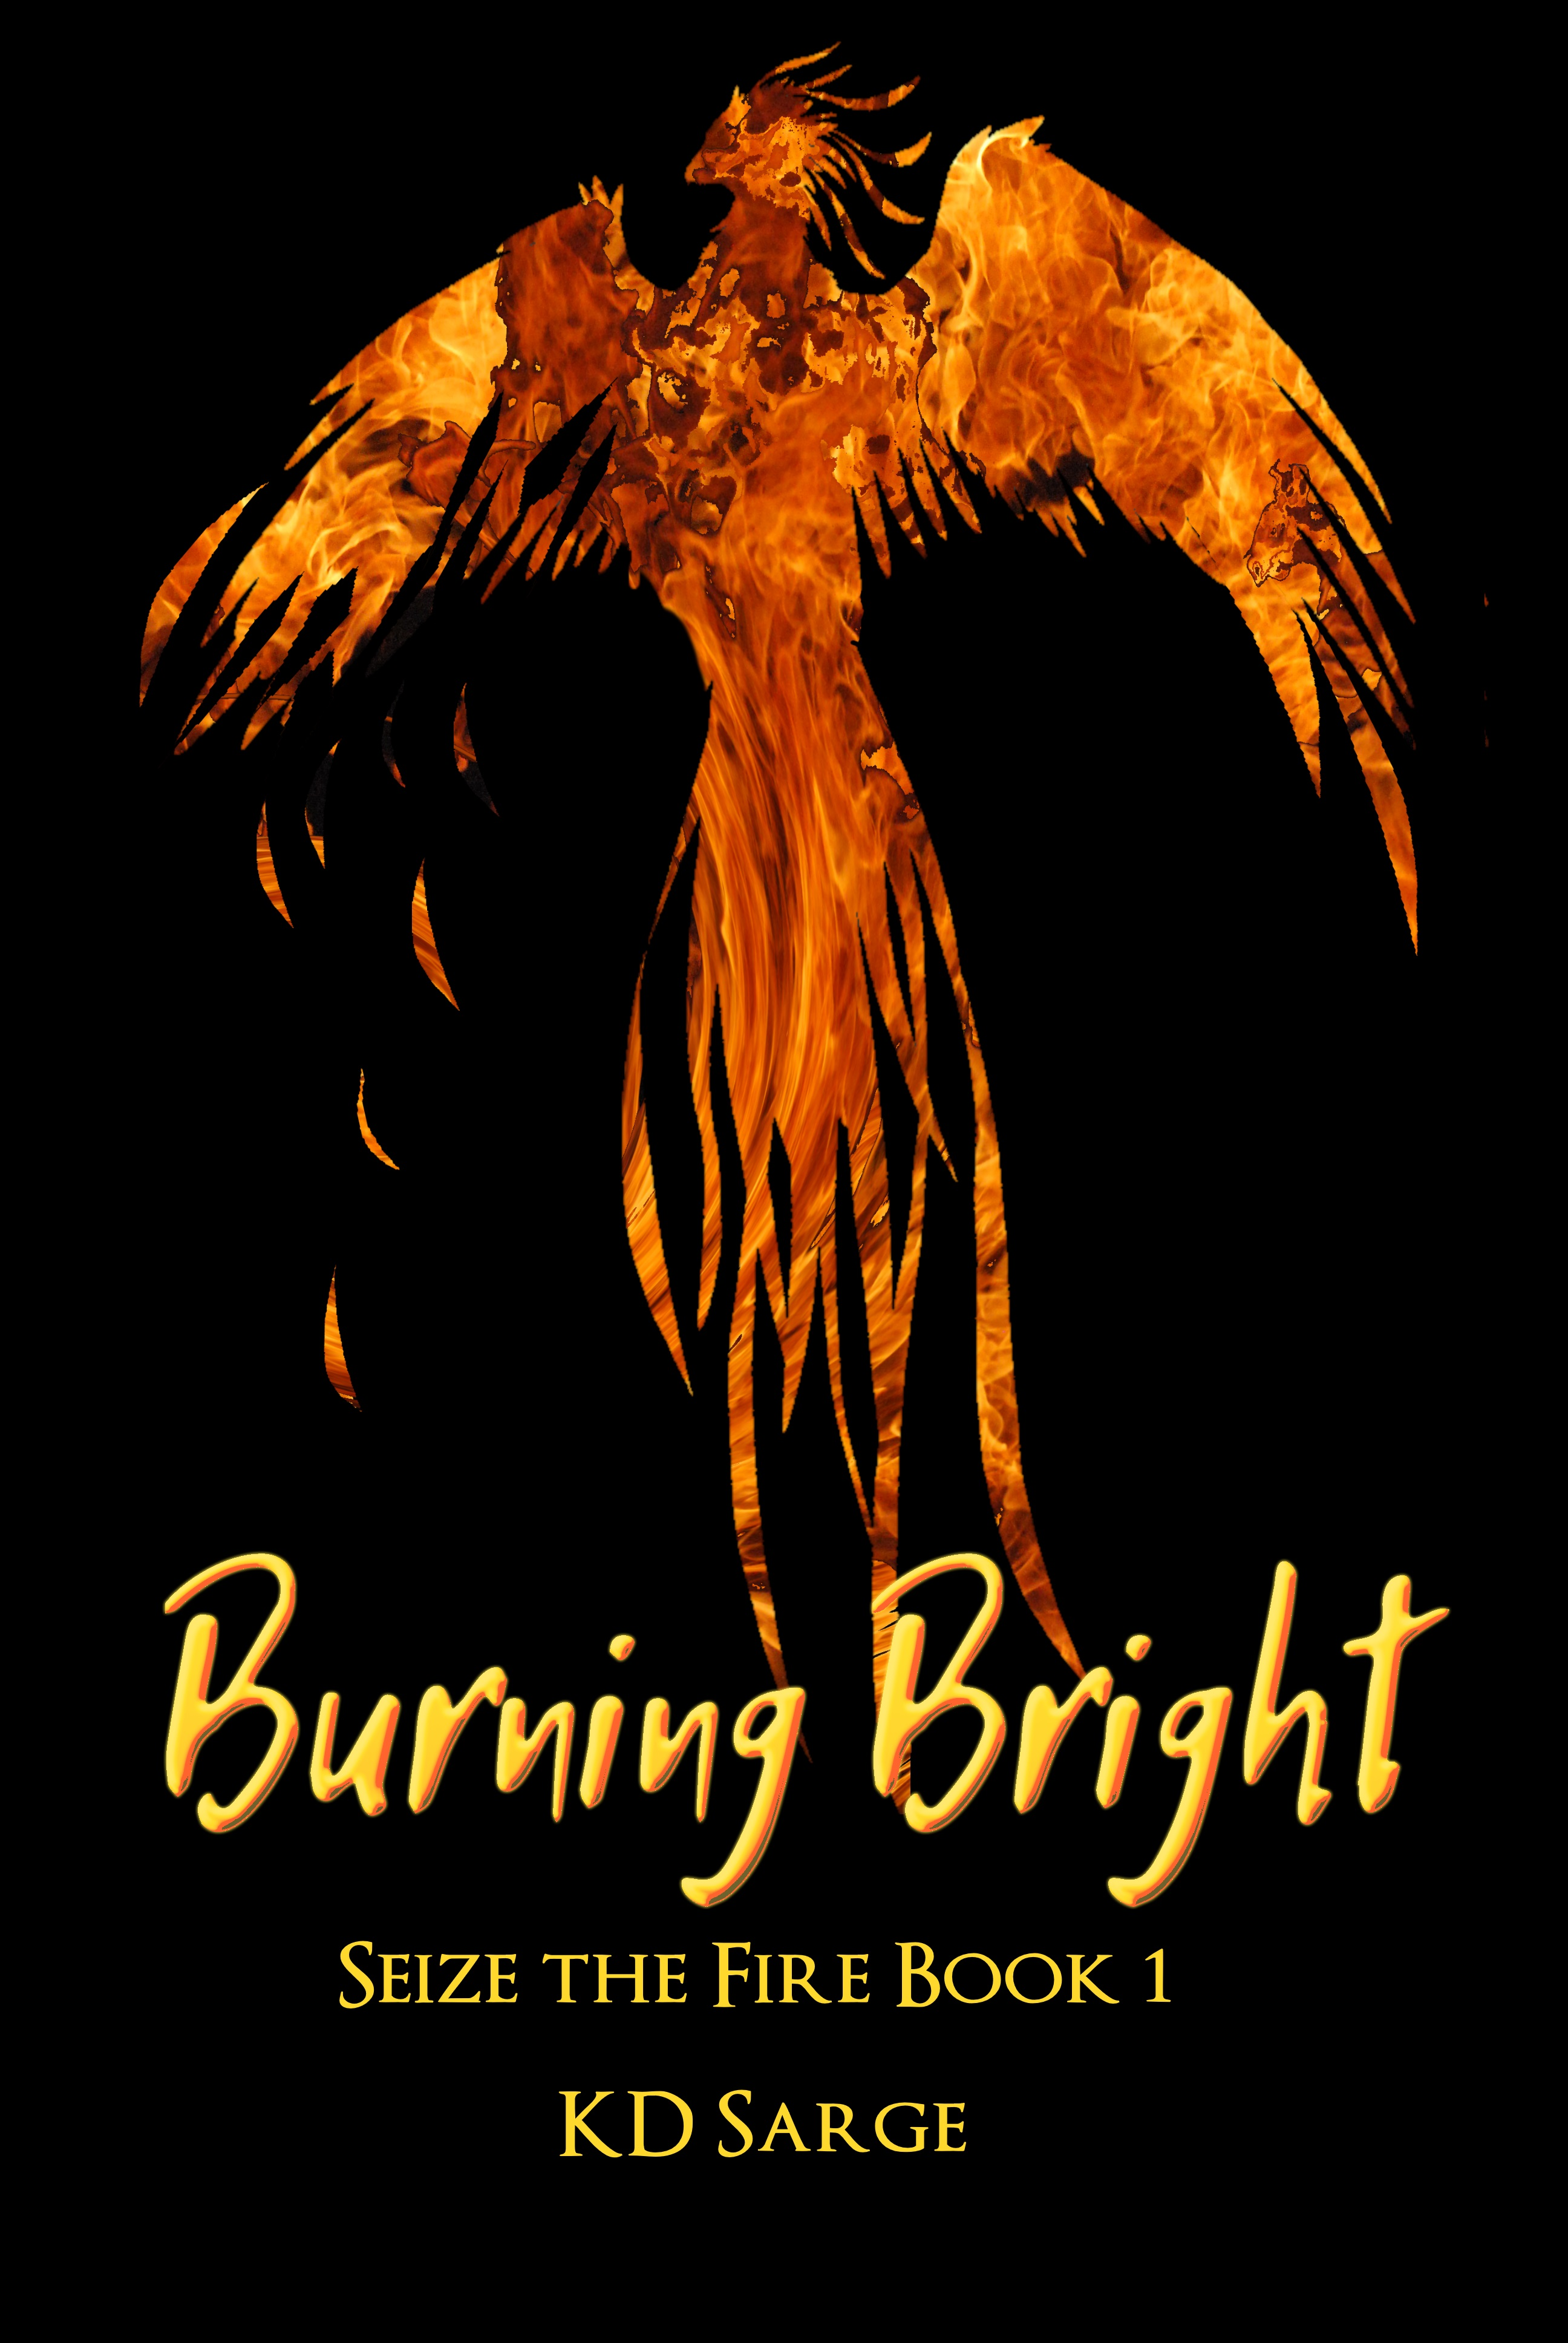 Burning Bright cover, a flaming phoenix on a black background